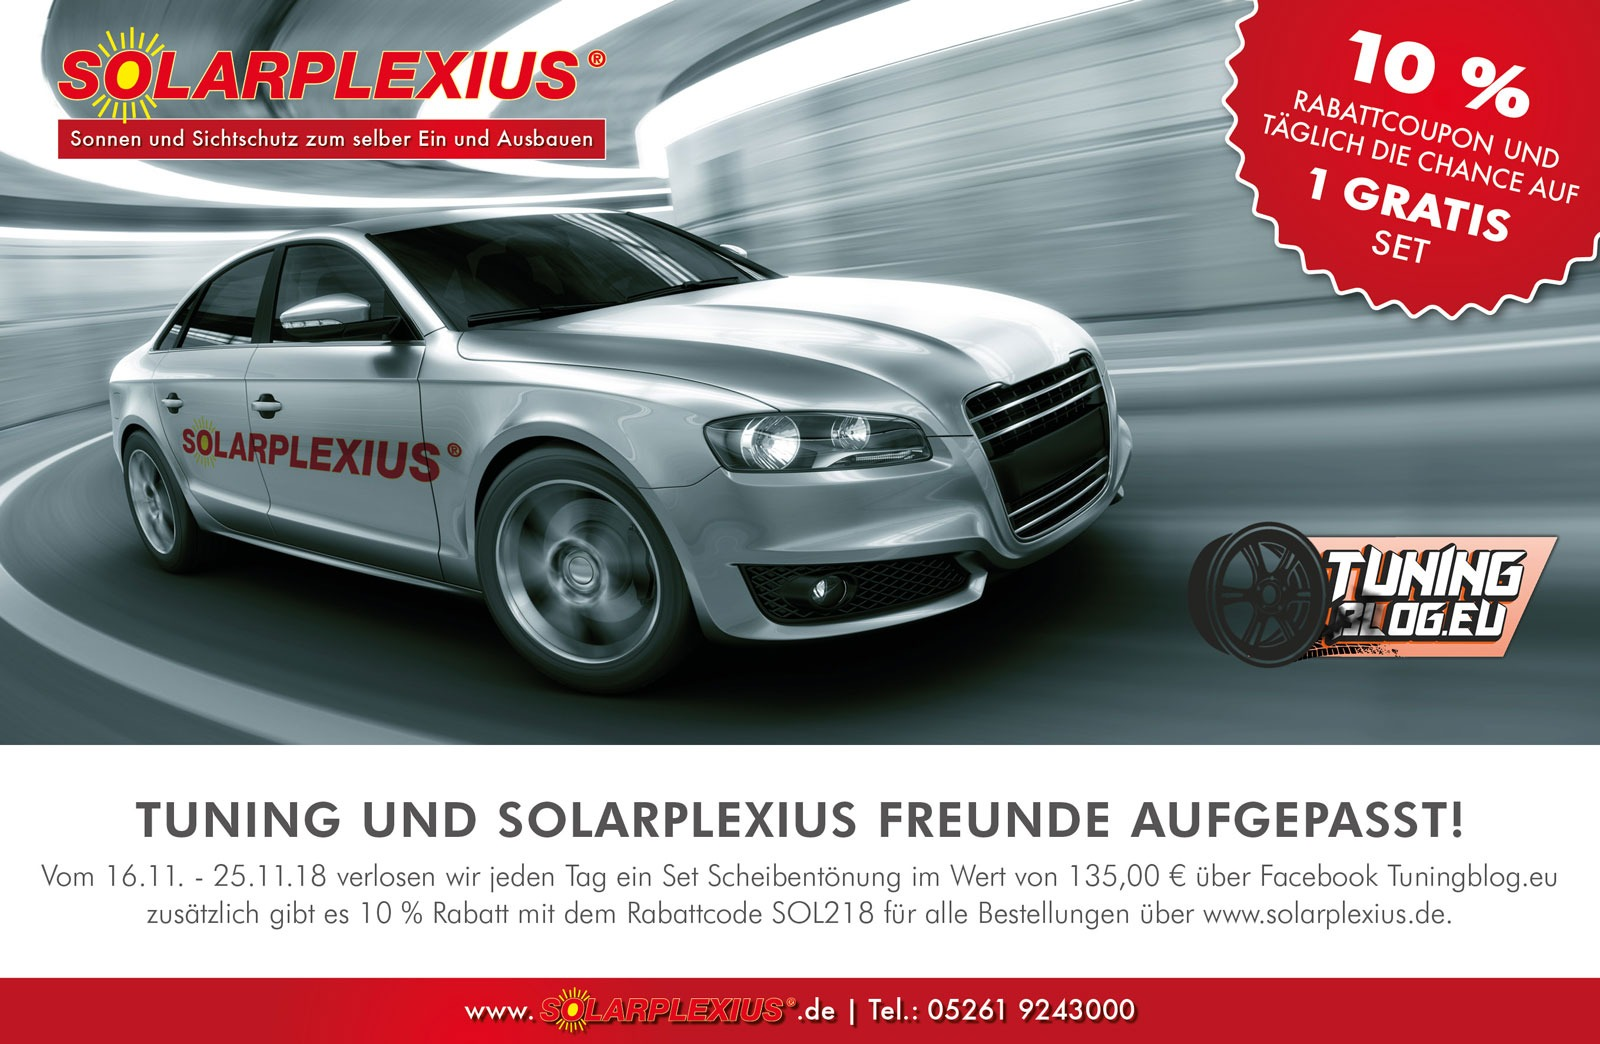 Solarplexius the optimal sun protection for the car